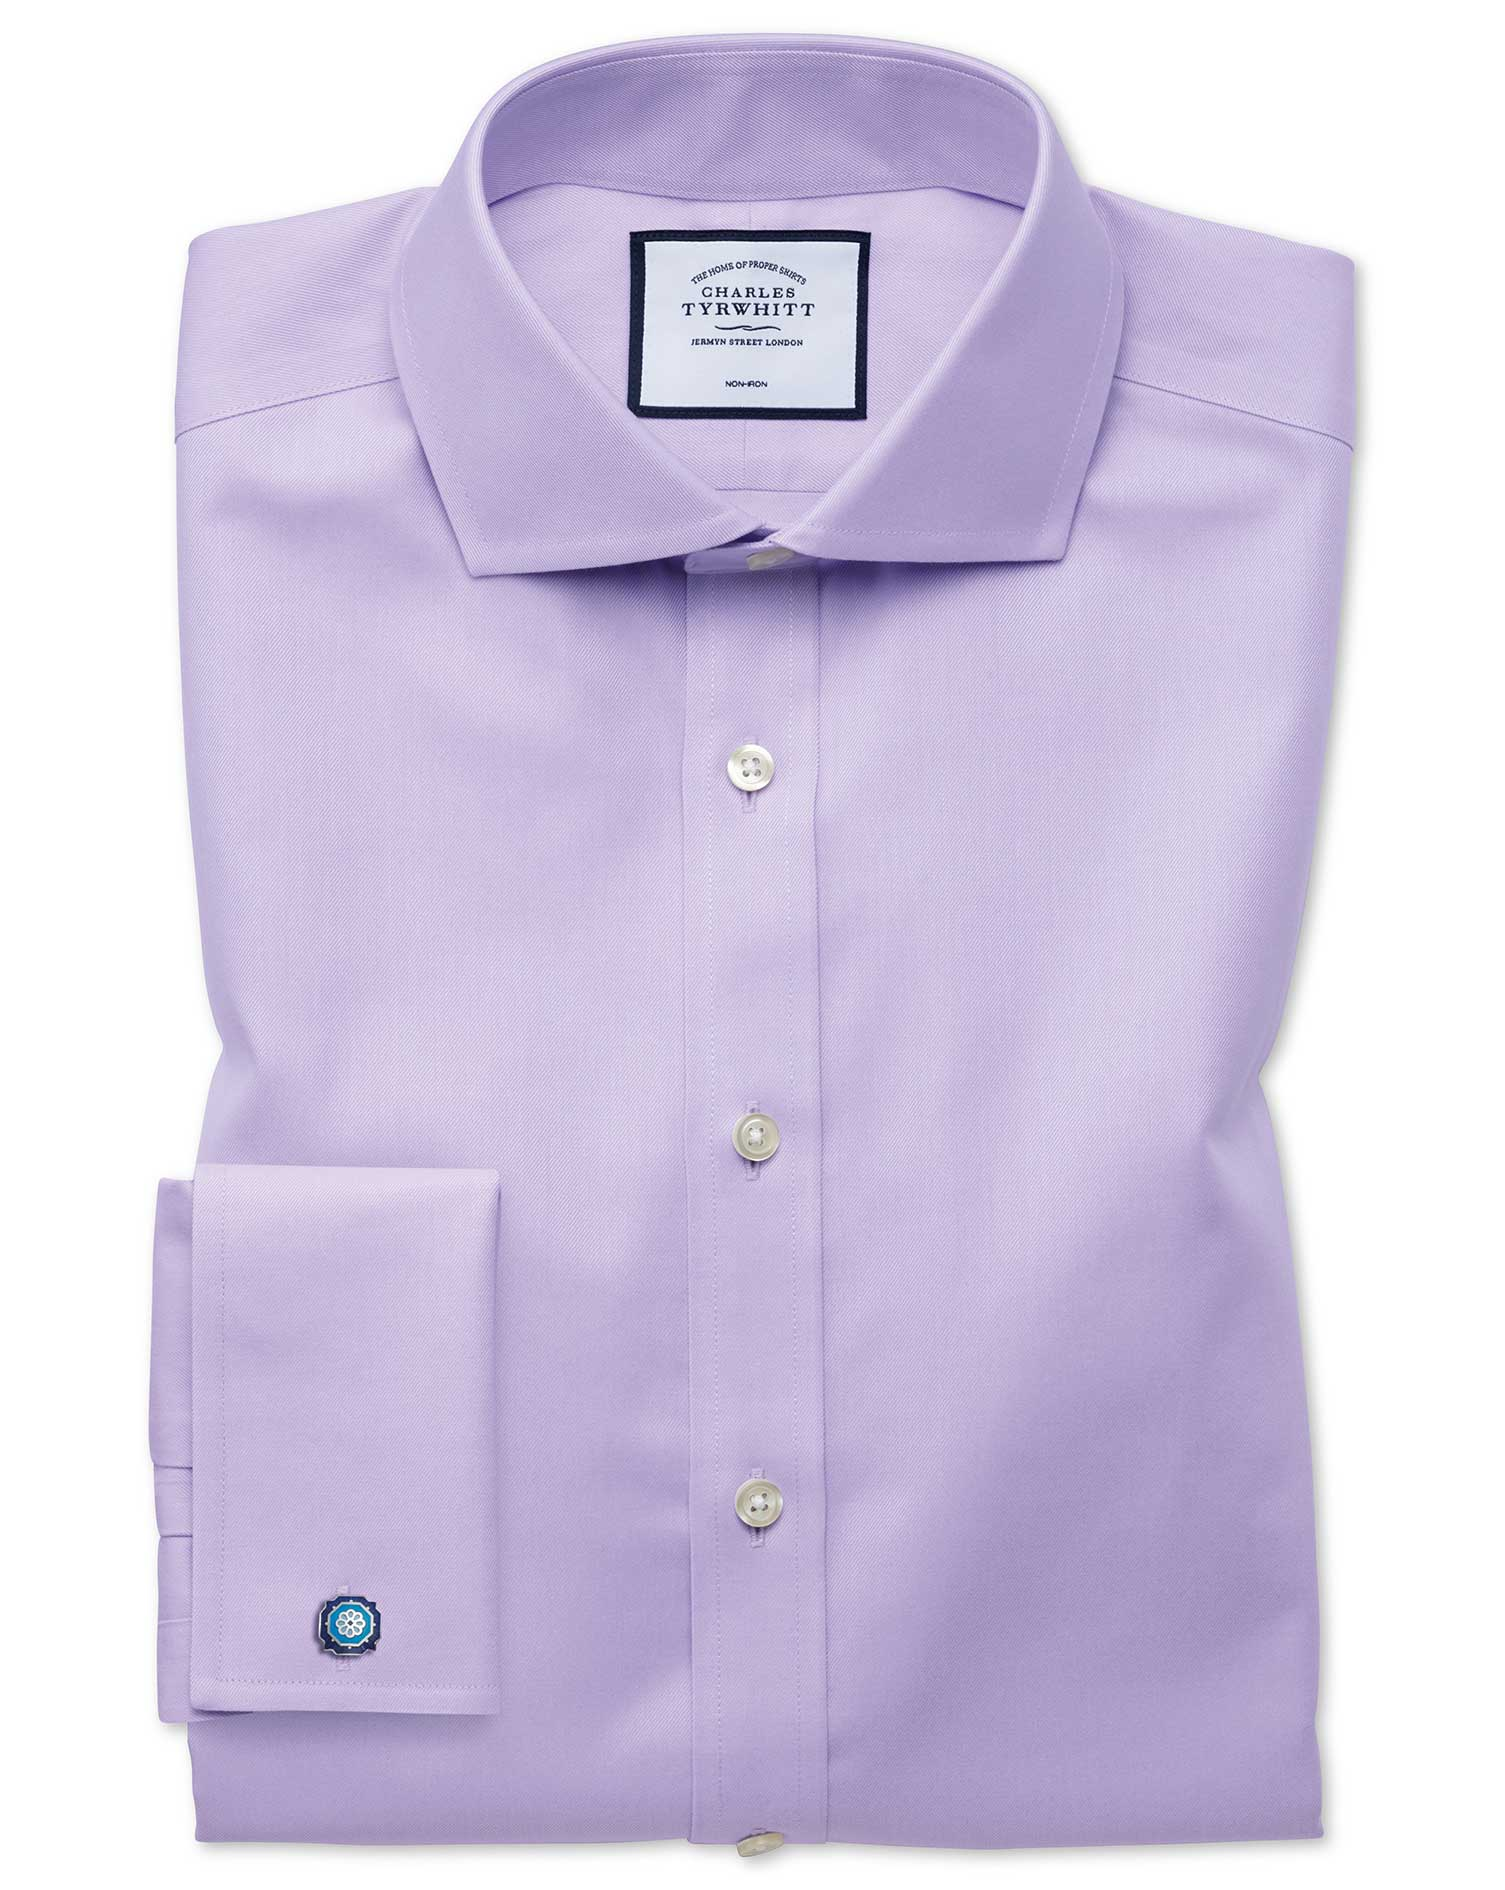 Slim Fit Non-Iron Twill Lilac Cotton Formal Shirt Single Cuff Size 15.5/33 by Charles Tyrwhitt